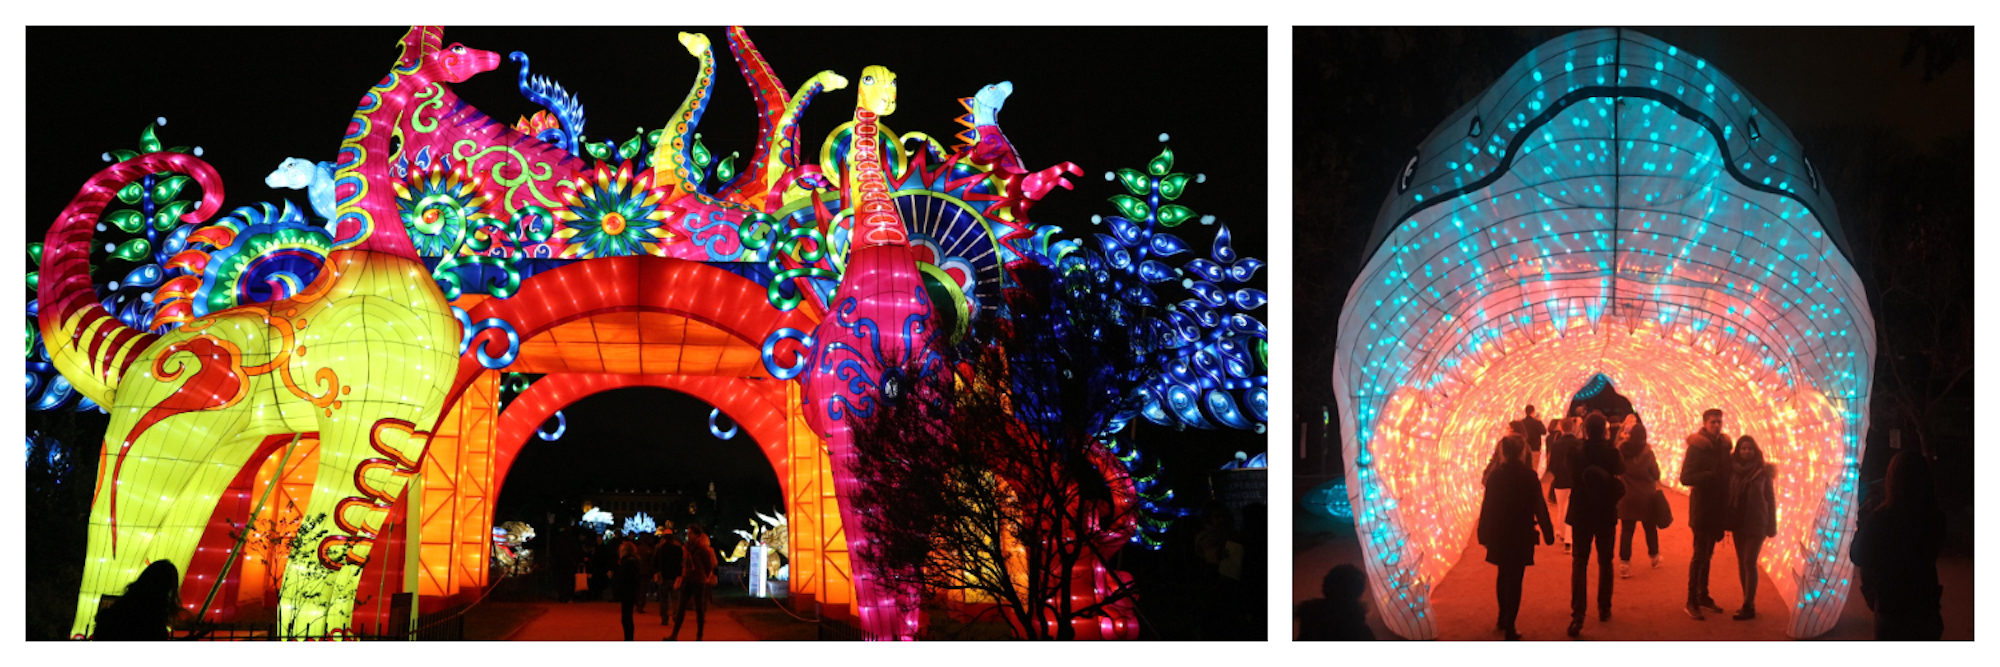 This Christmas in Paris, the Jardin des Plantes (garden of plants) put on an incredible show of colorfully-lit animal figures.